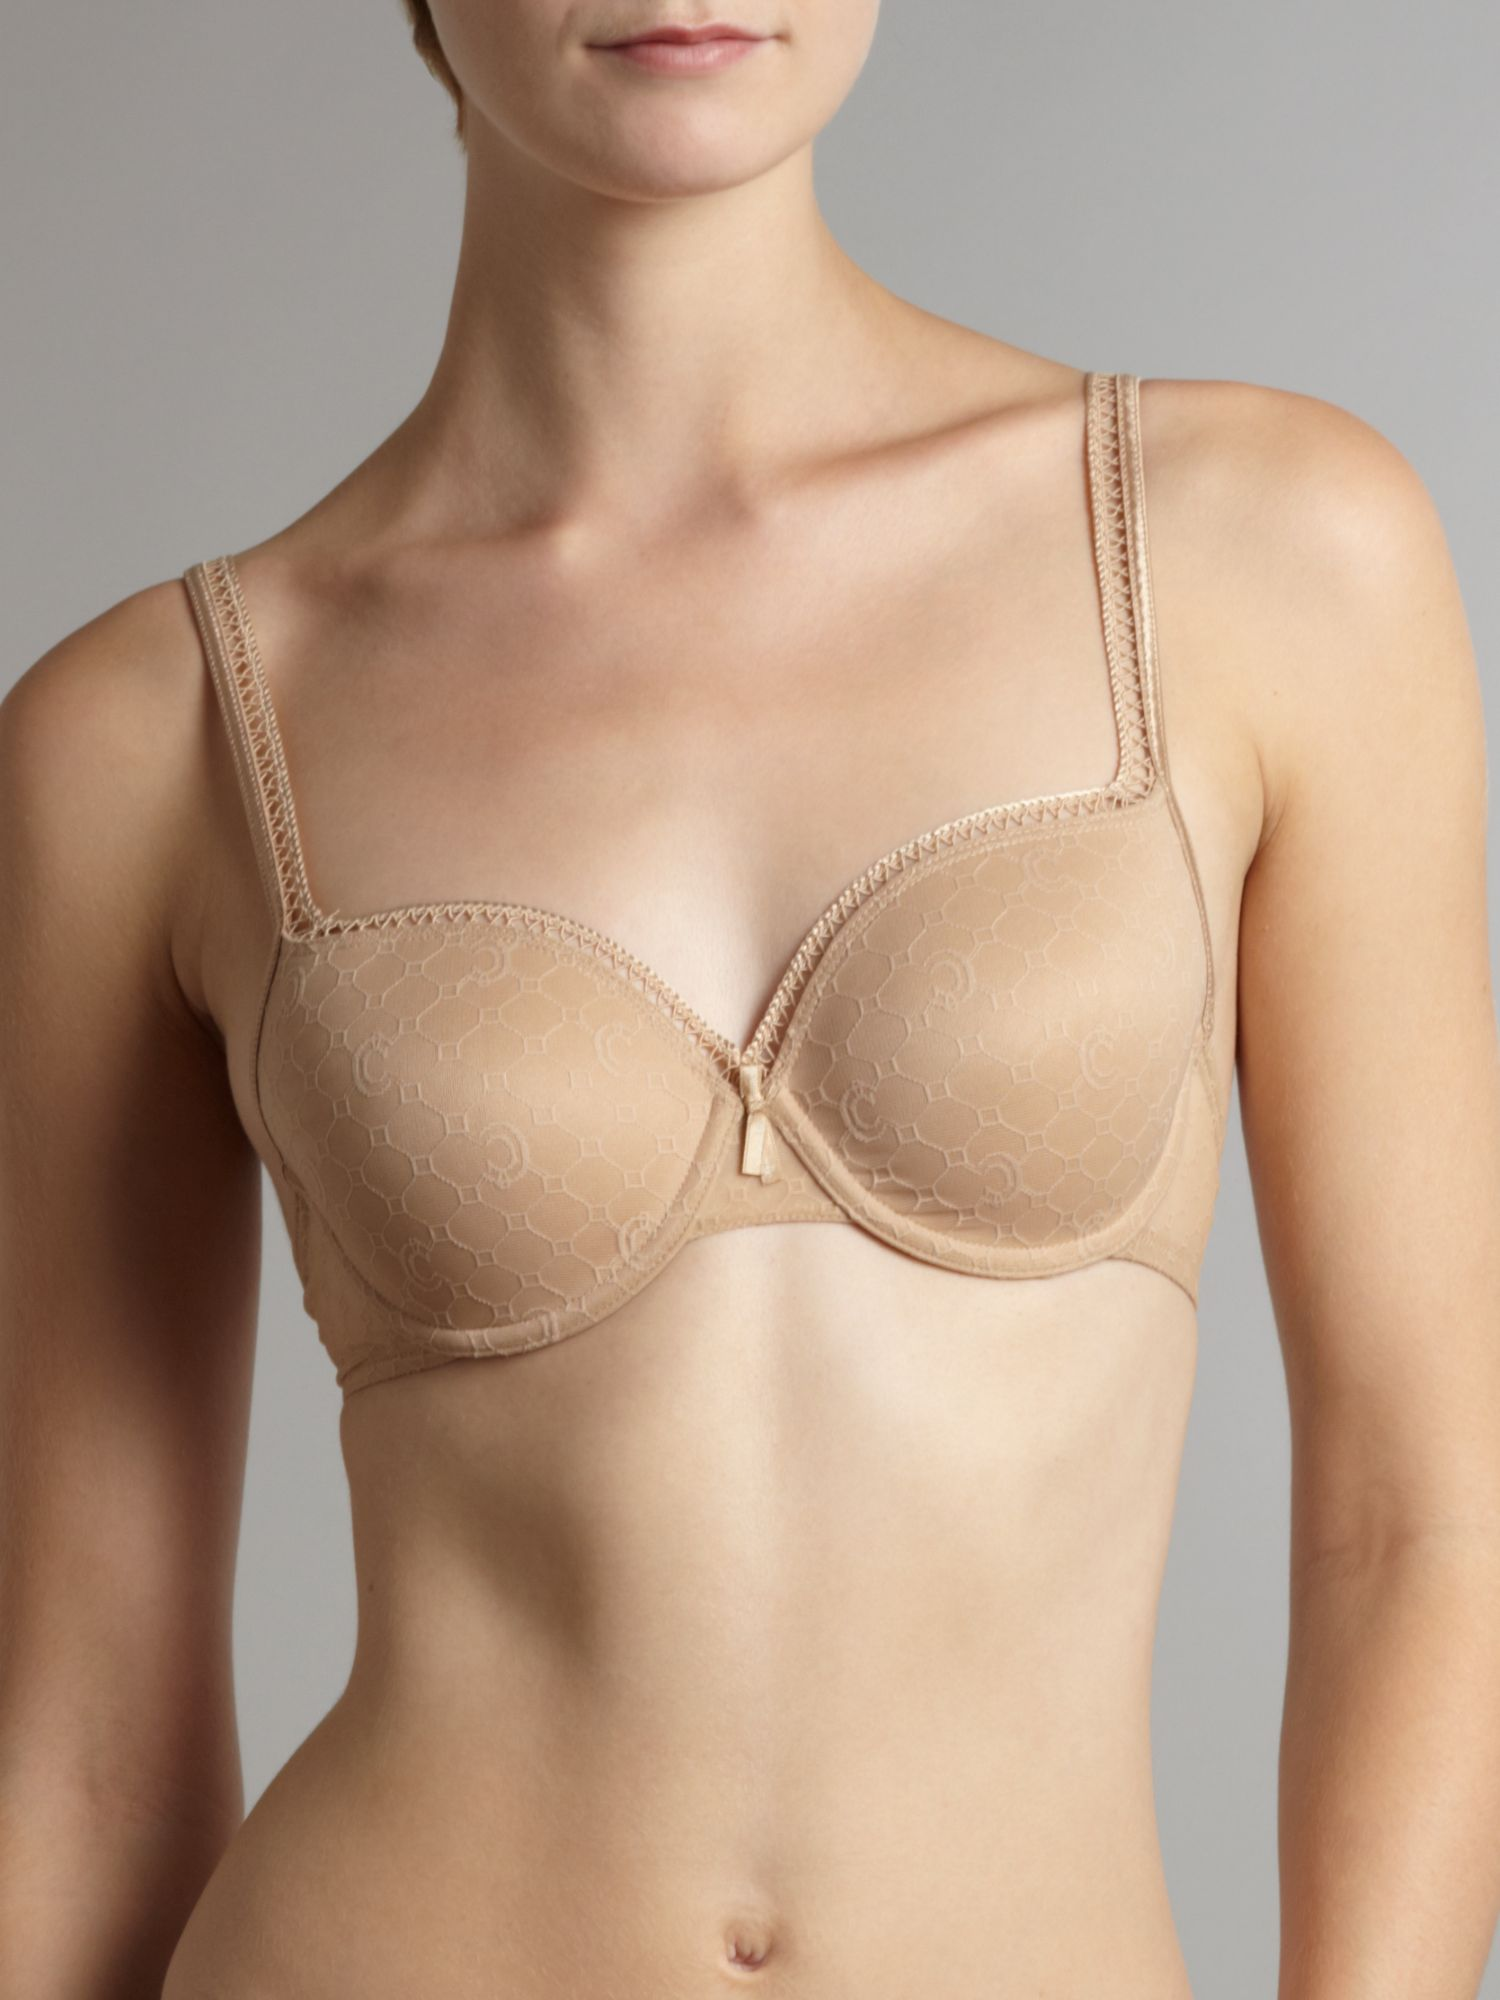 C-chic t-shirt bra